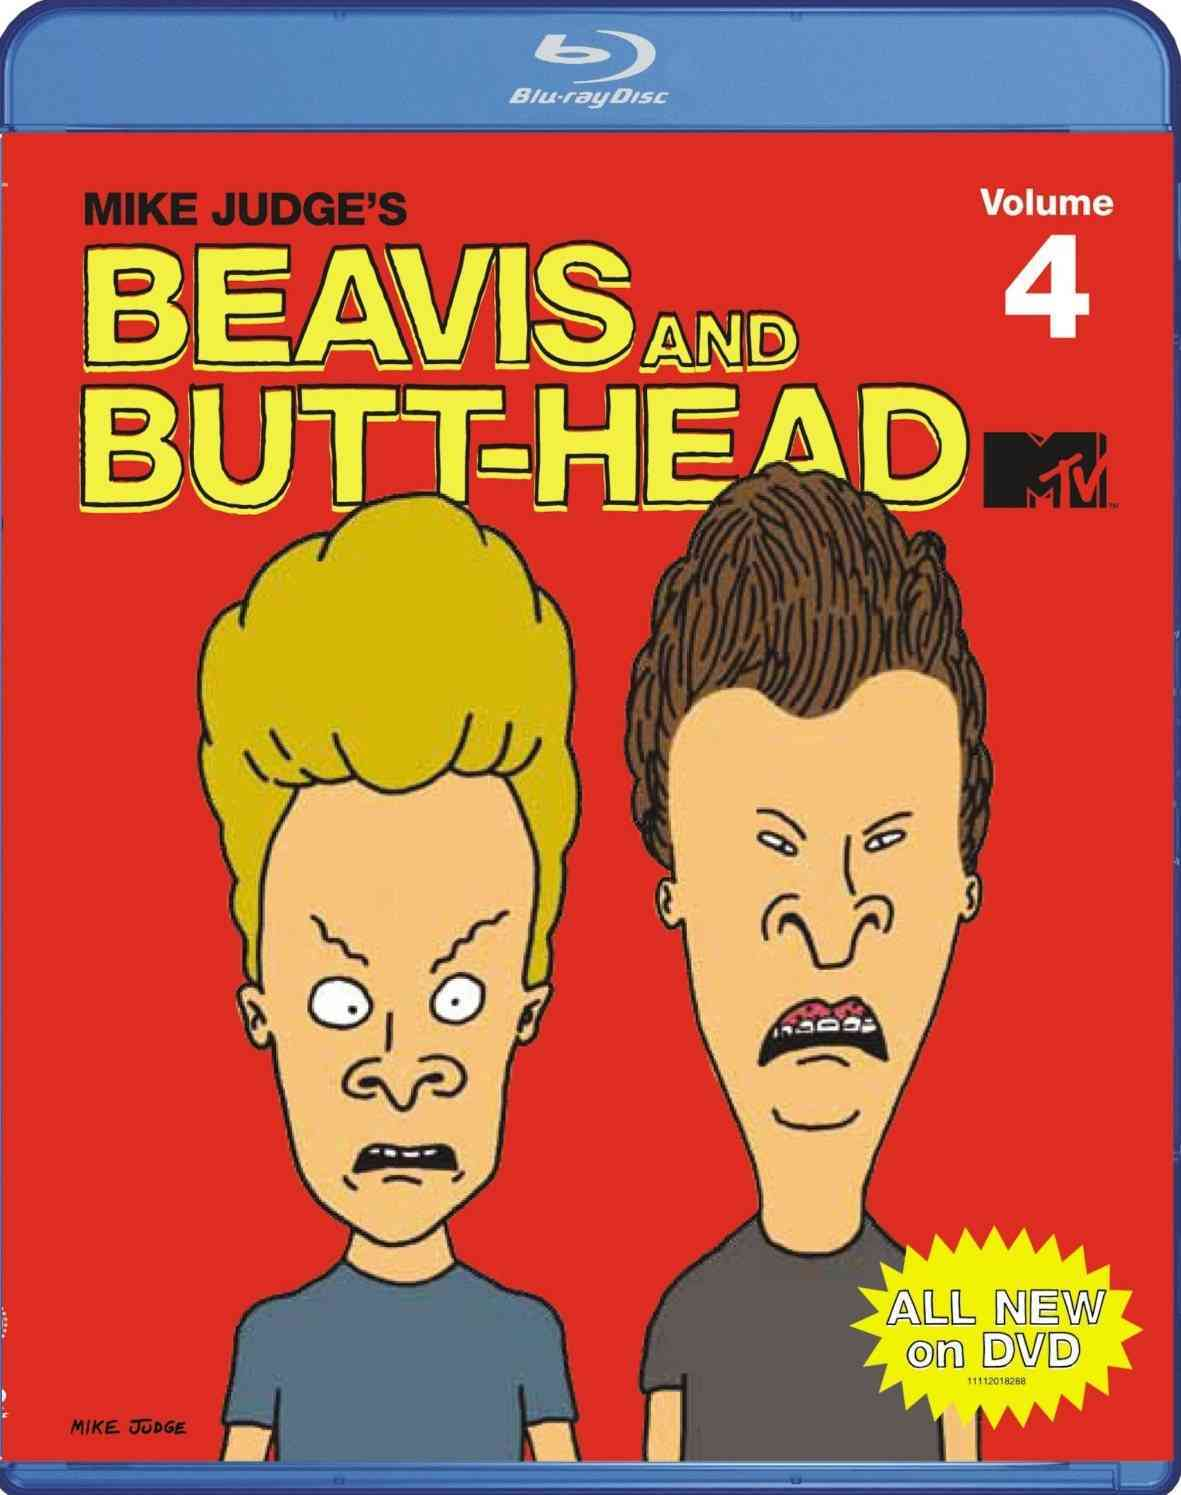 BEAVIS & BUTT HEAD:MIKE JUDGE VOL 4 BY BEAVIS & BUTT-HEAD (Blu-Ray)